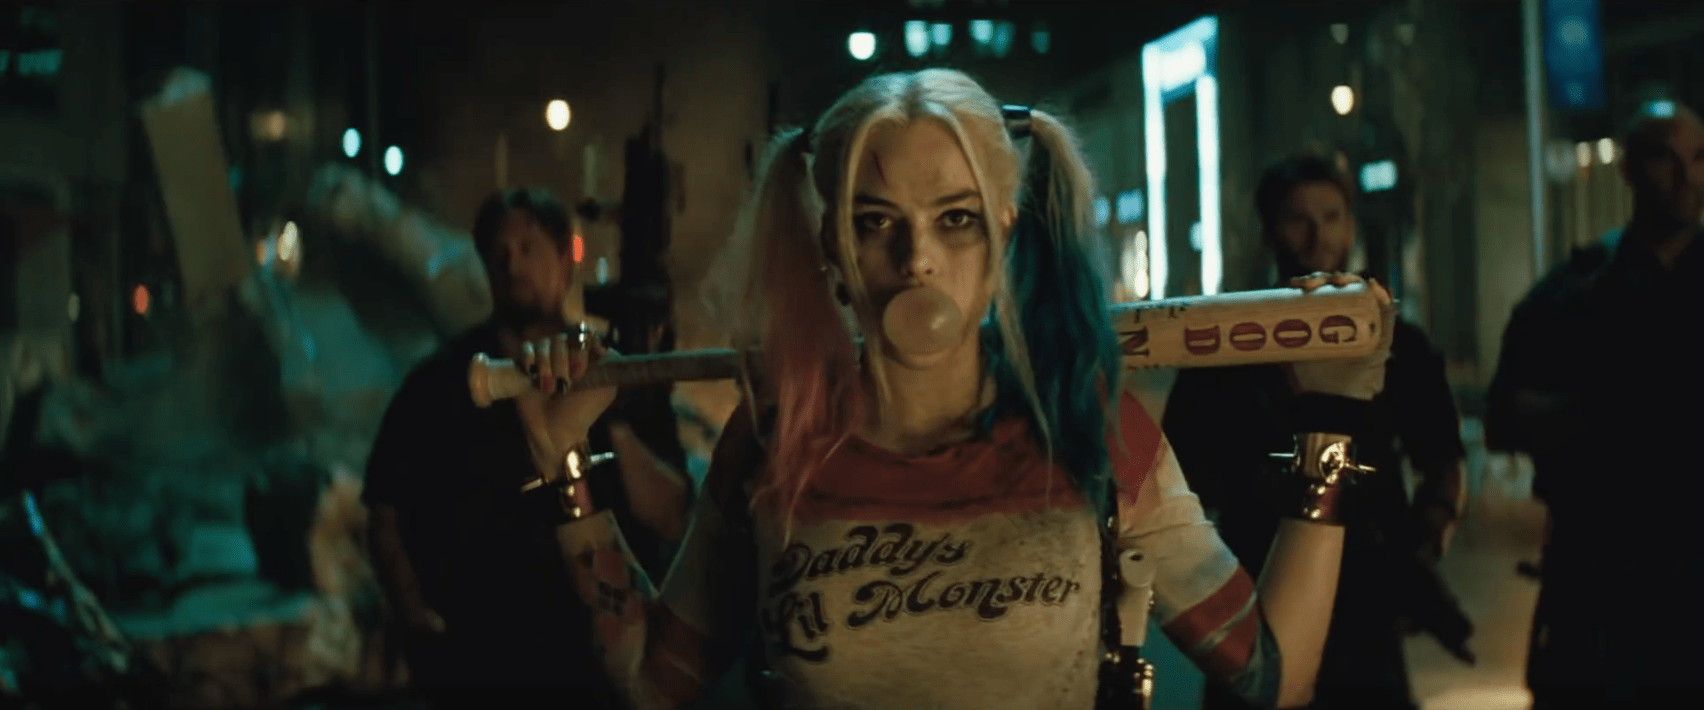 Weekend box office predictions will suicide squad die hard movie - 2016 box office predictions ...